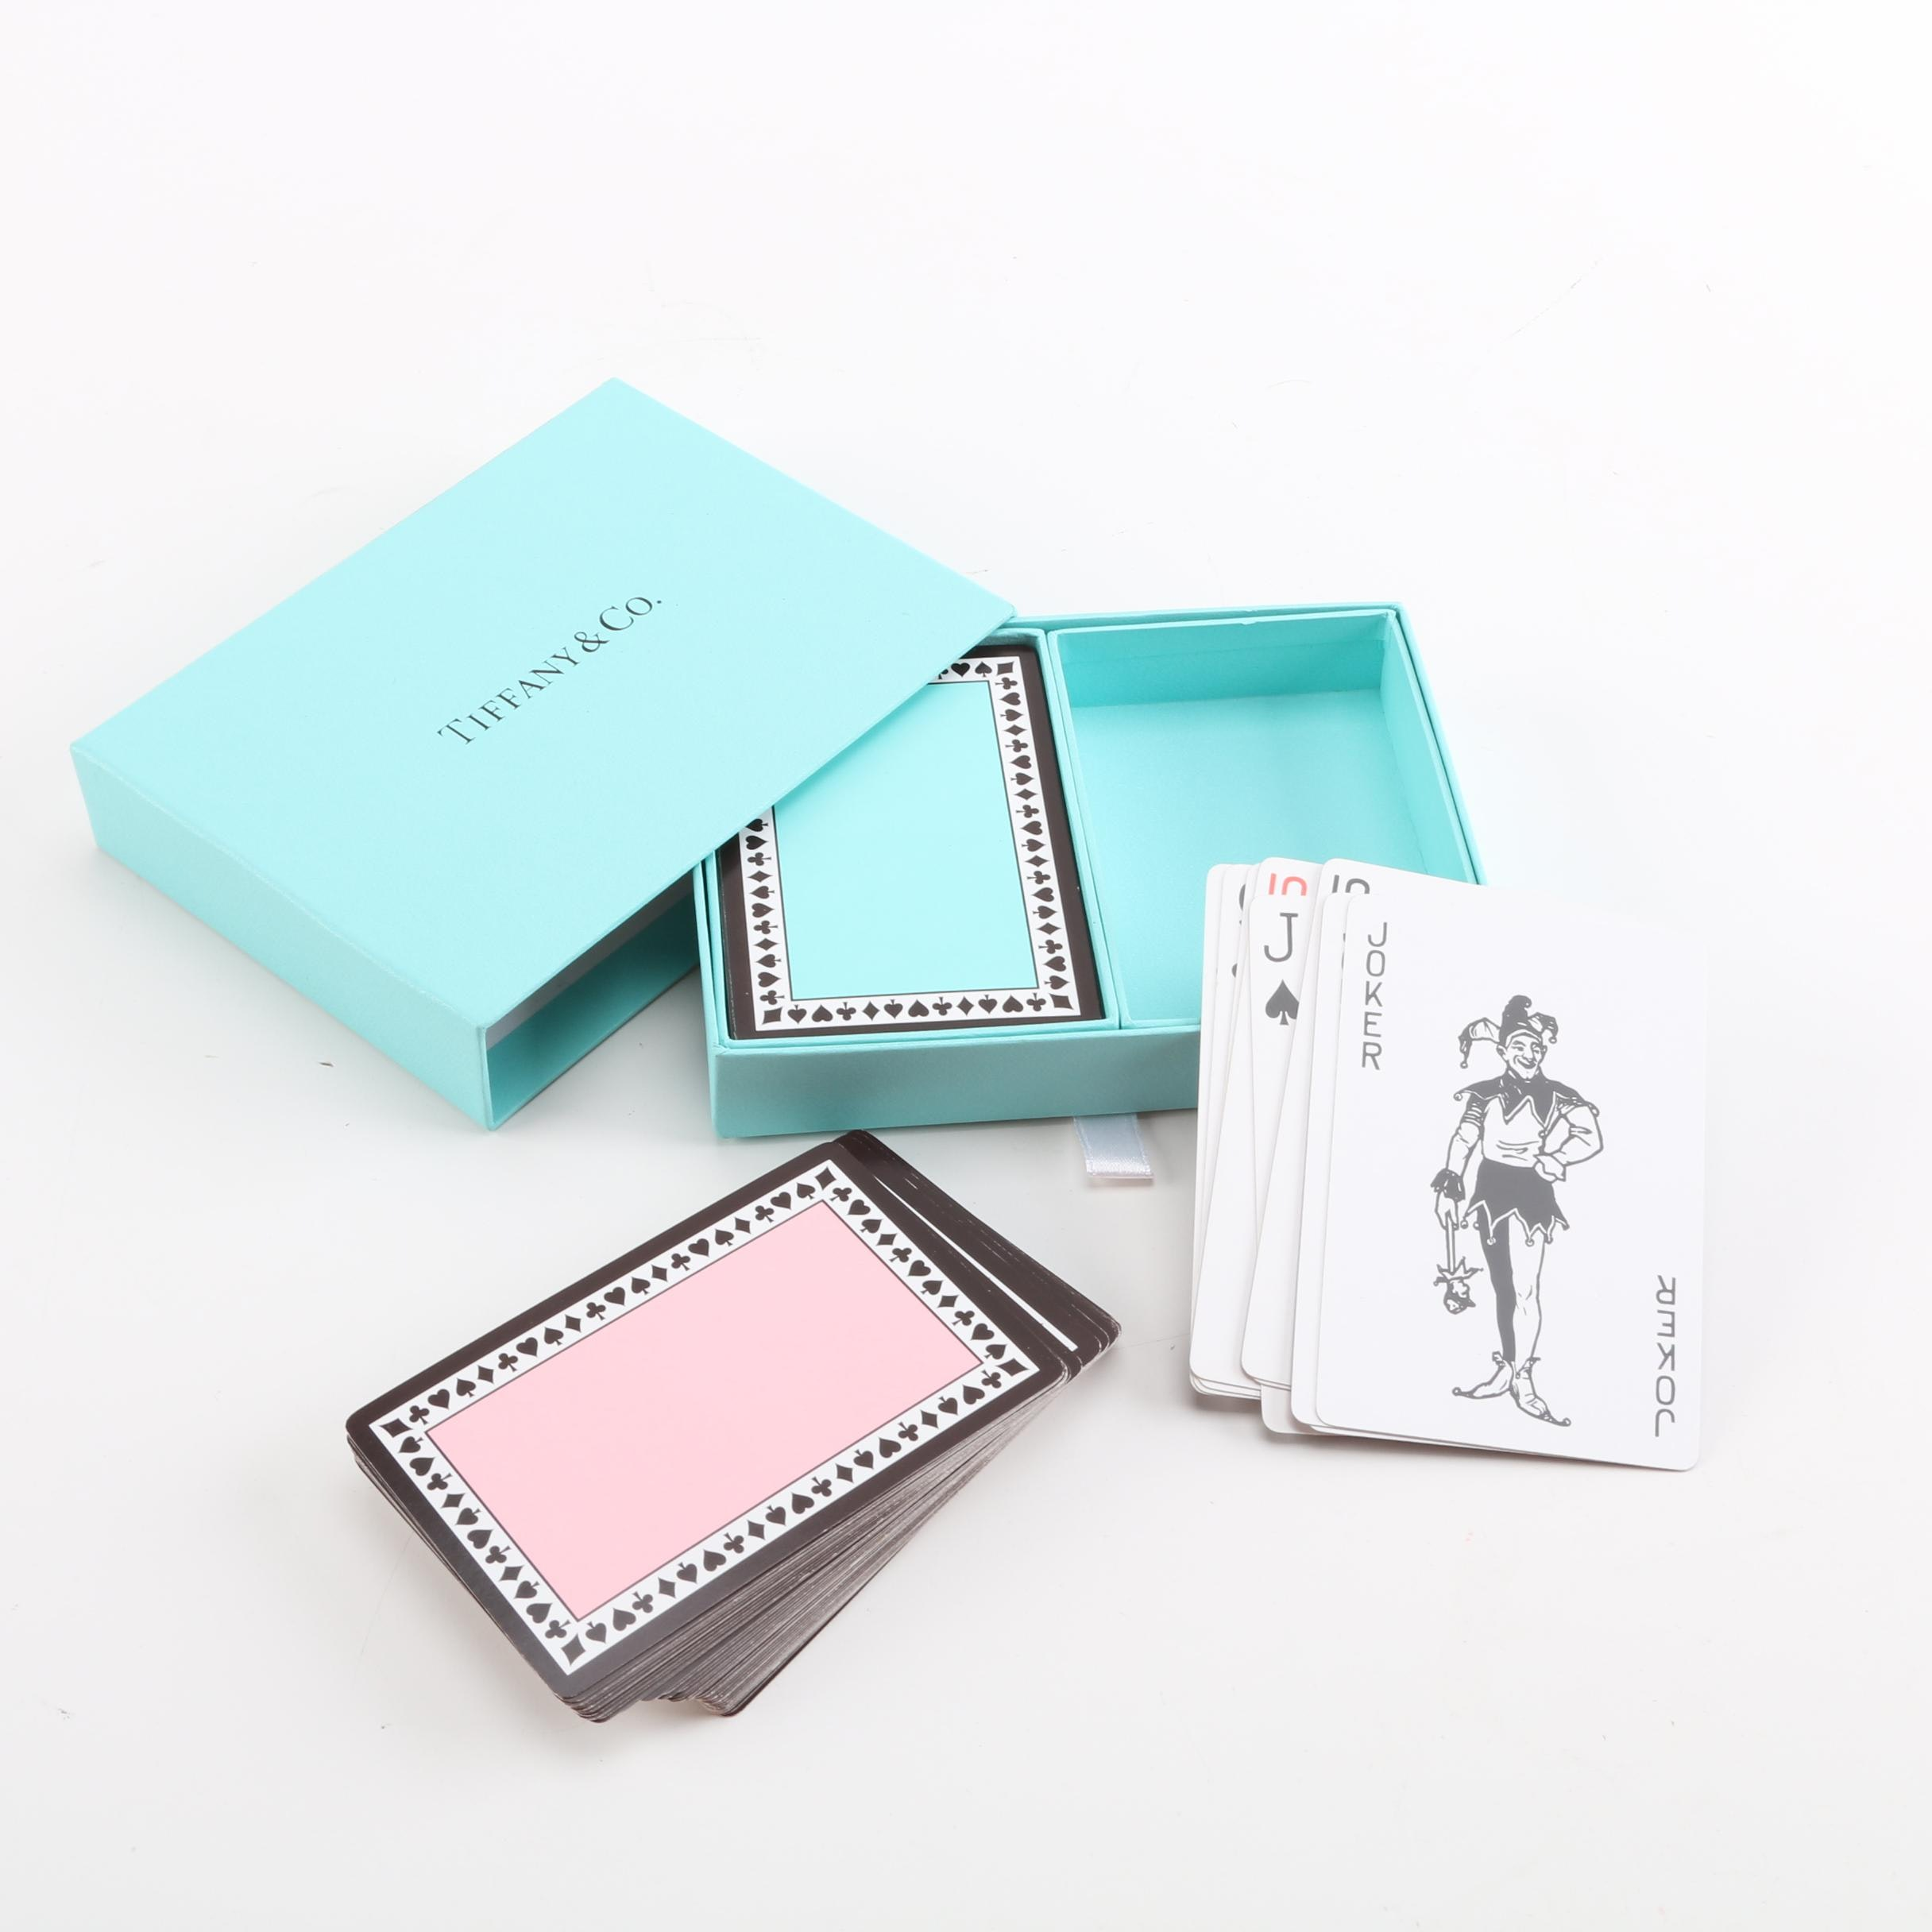 Tiffany & Co. Playing Cards with Case